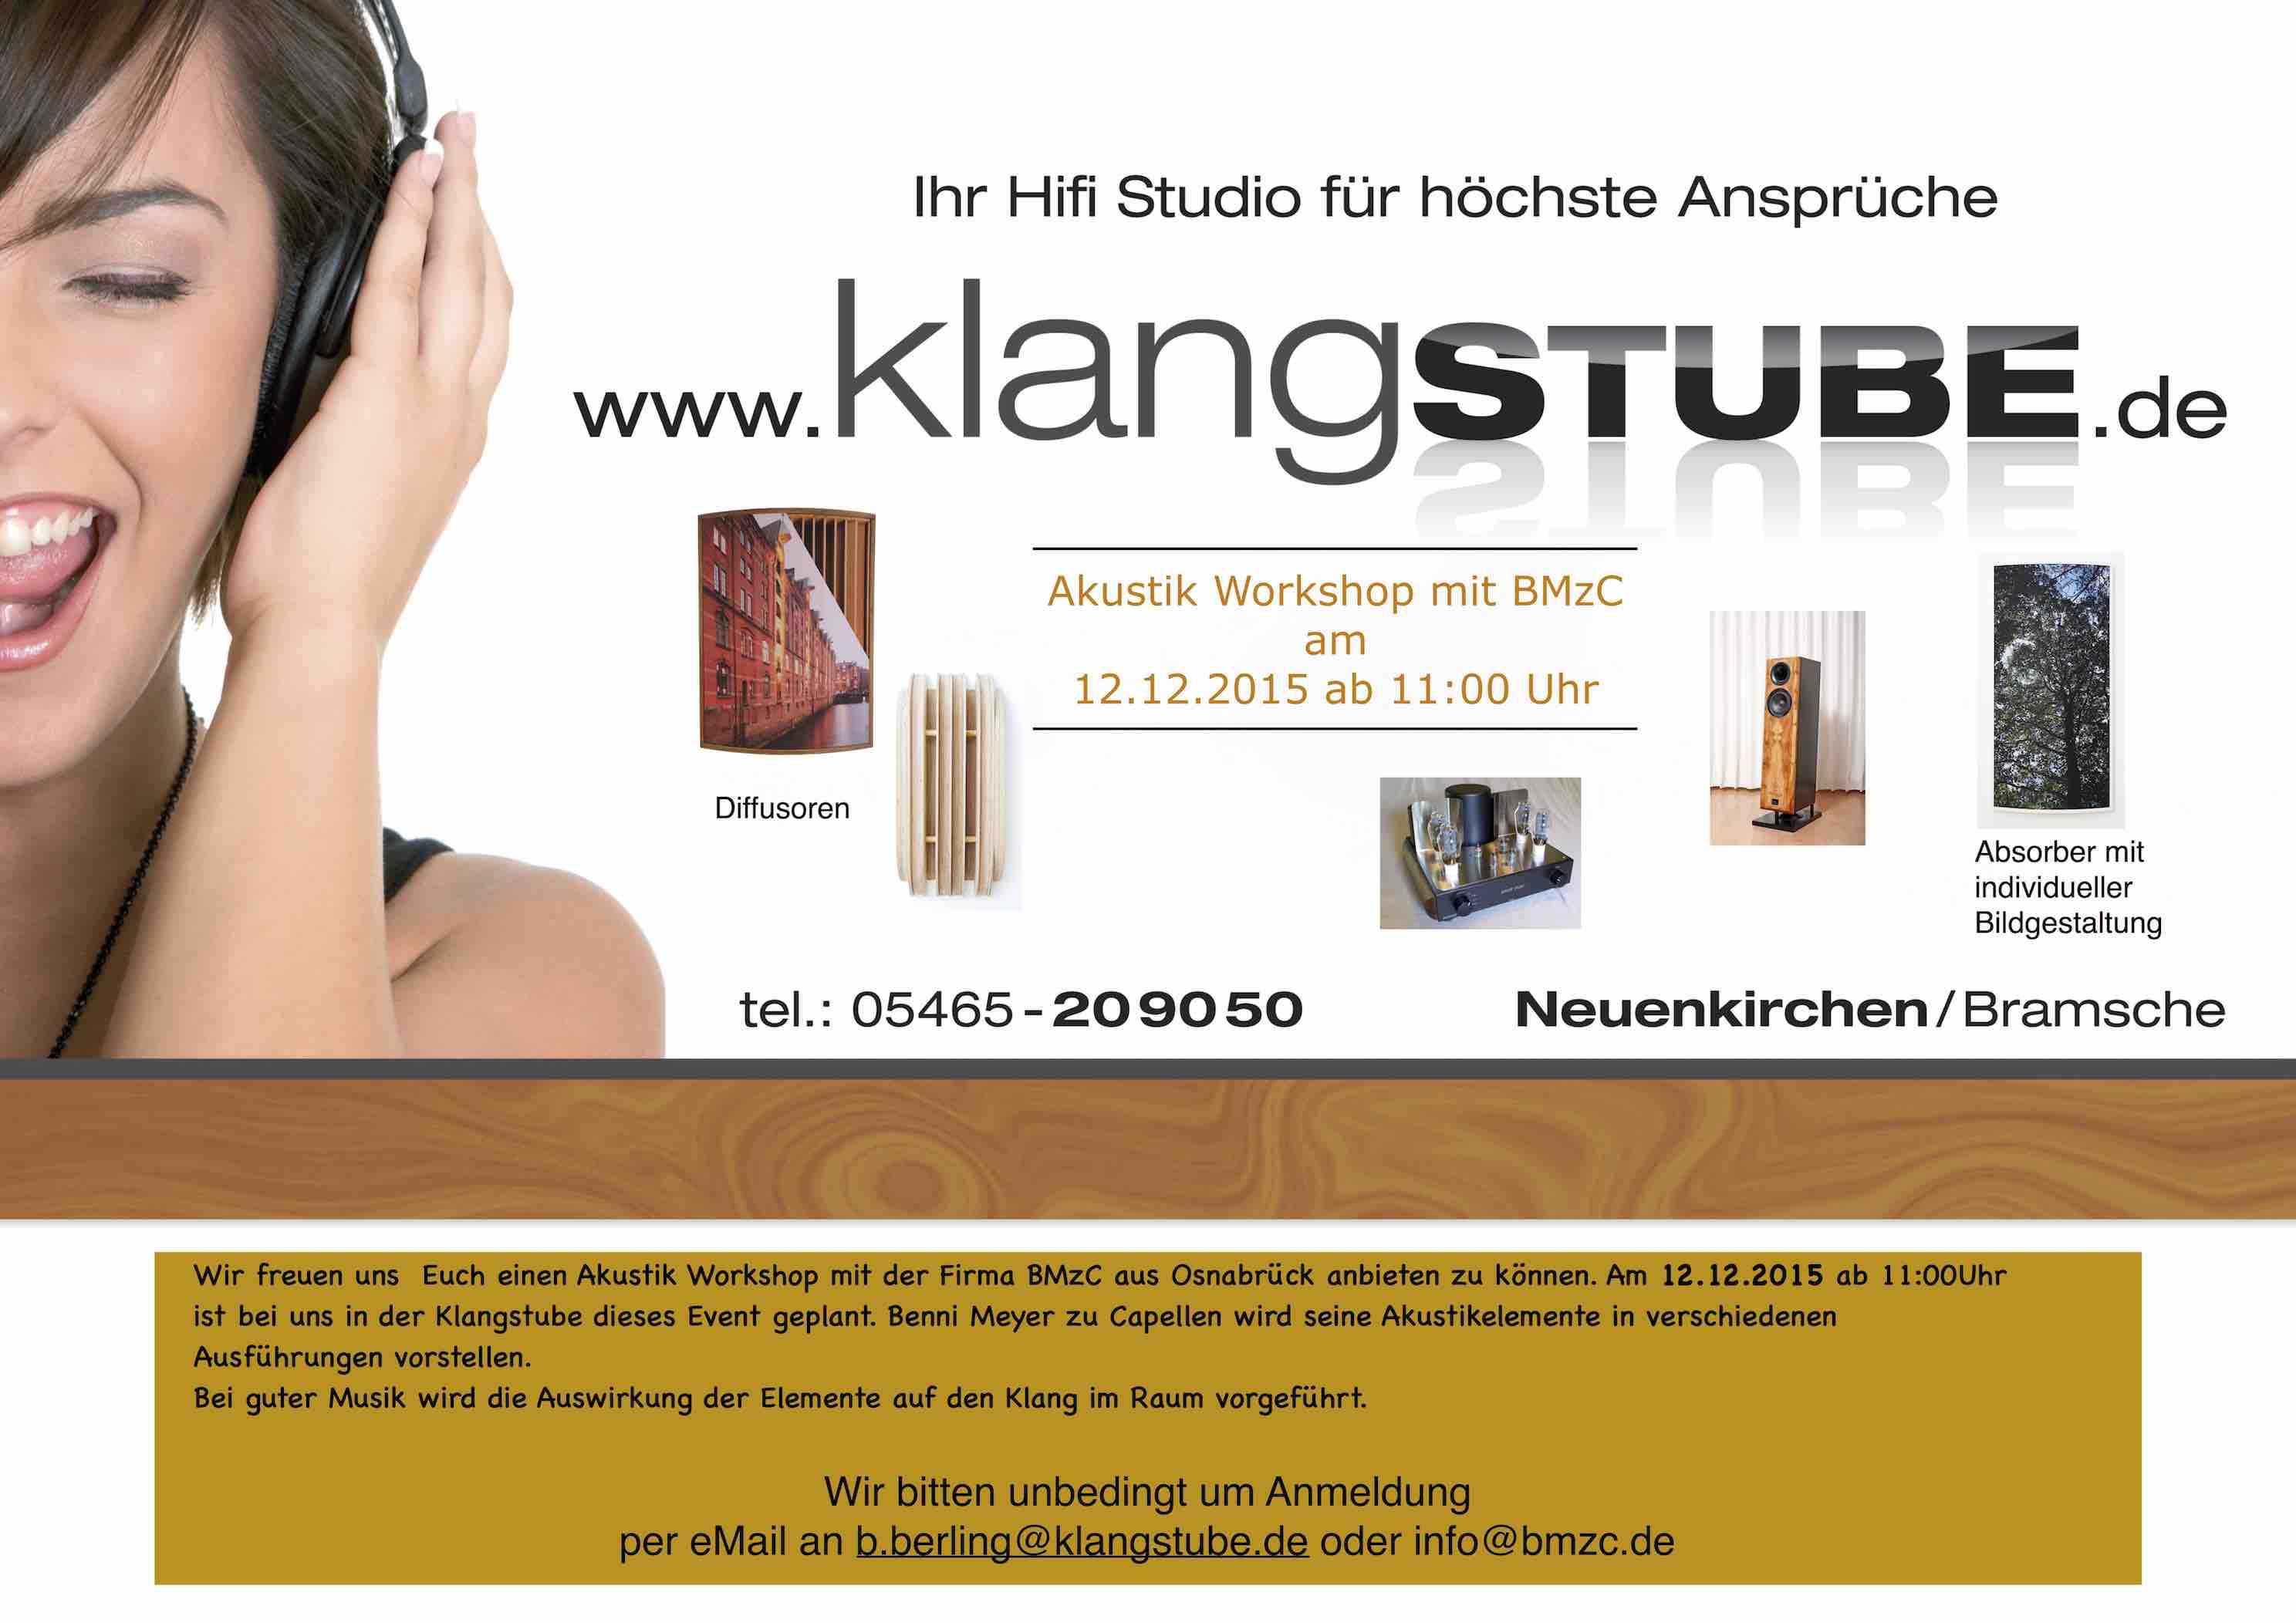 Event in der klangSTUBE am 12.12.2015 ab 11:00Uhr